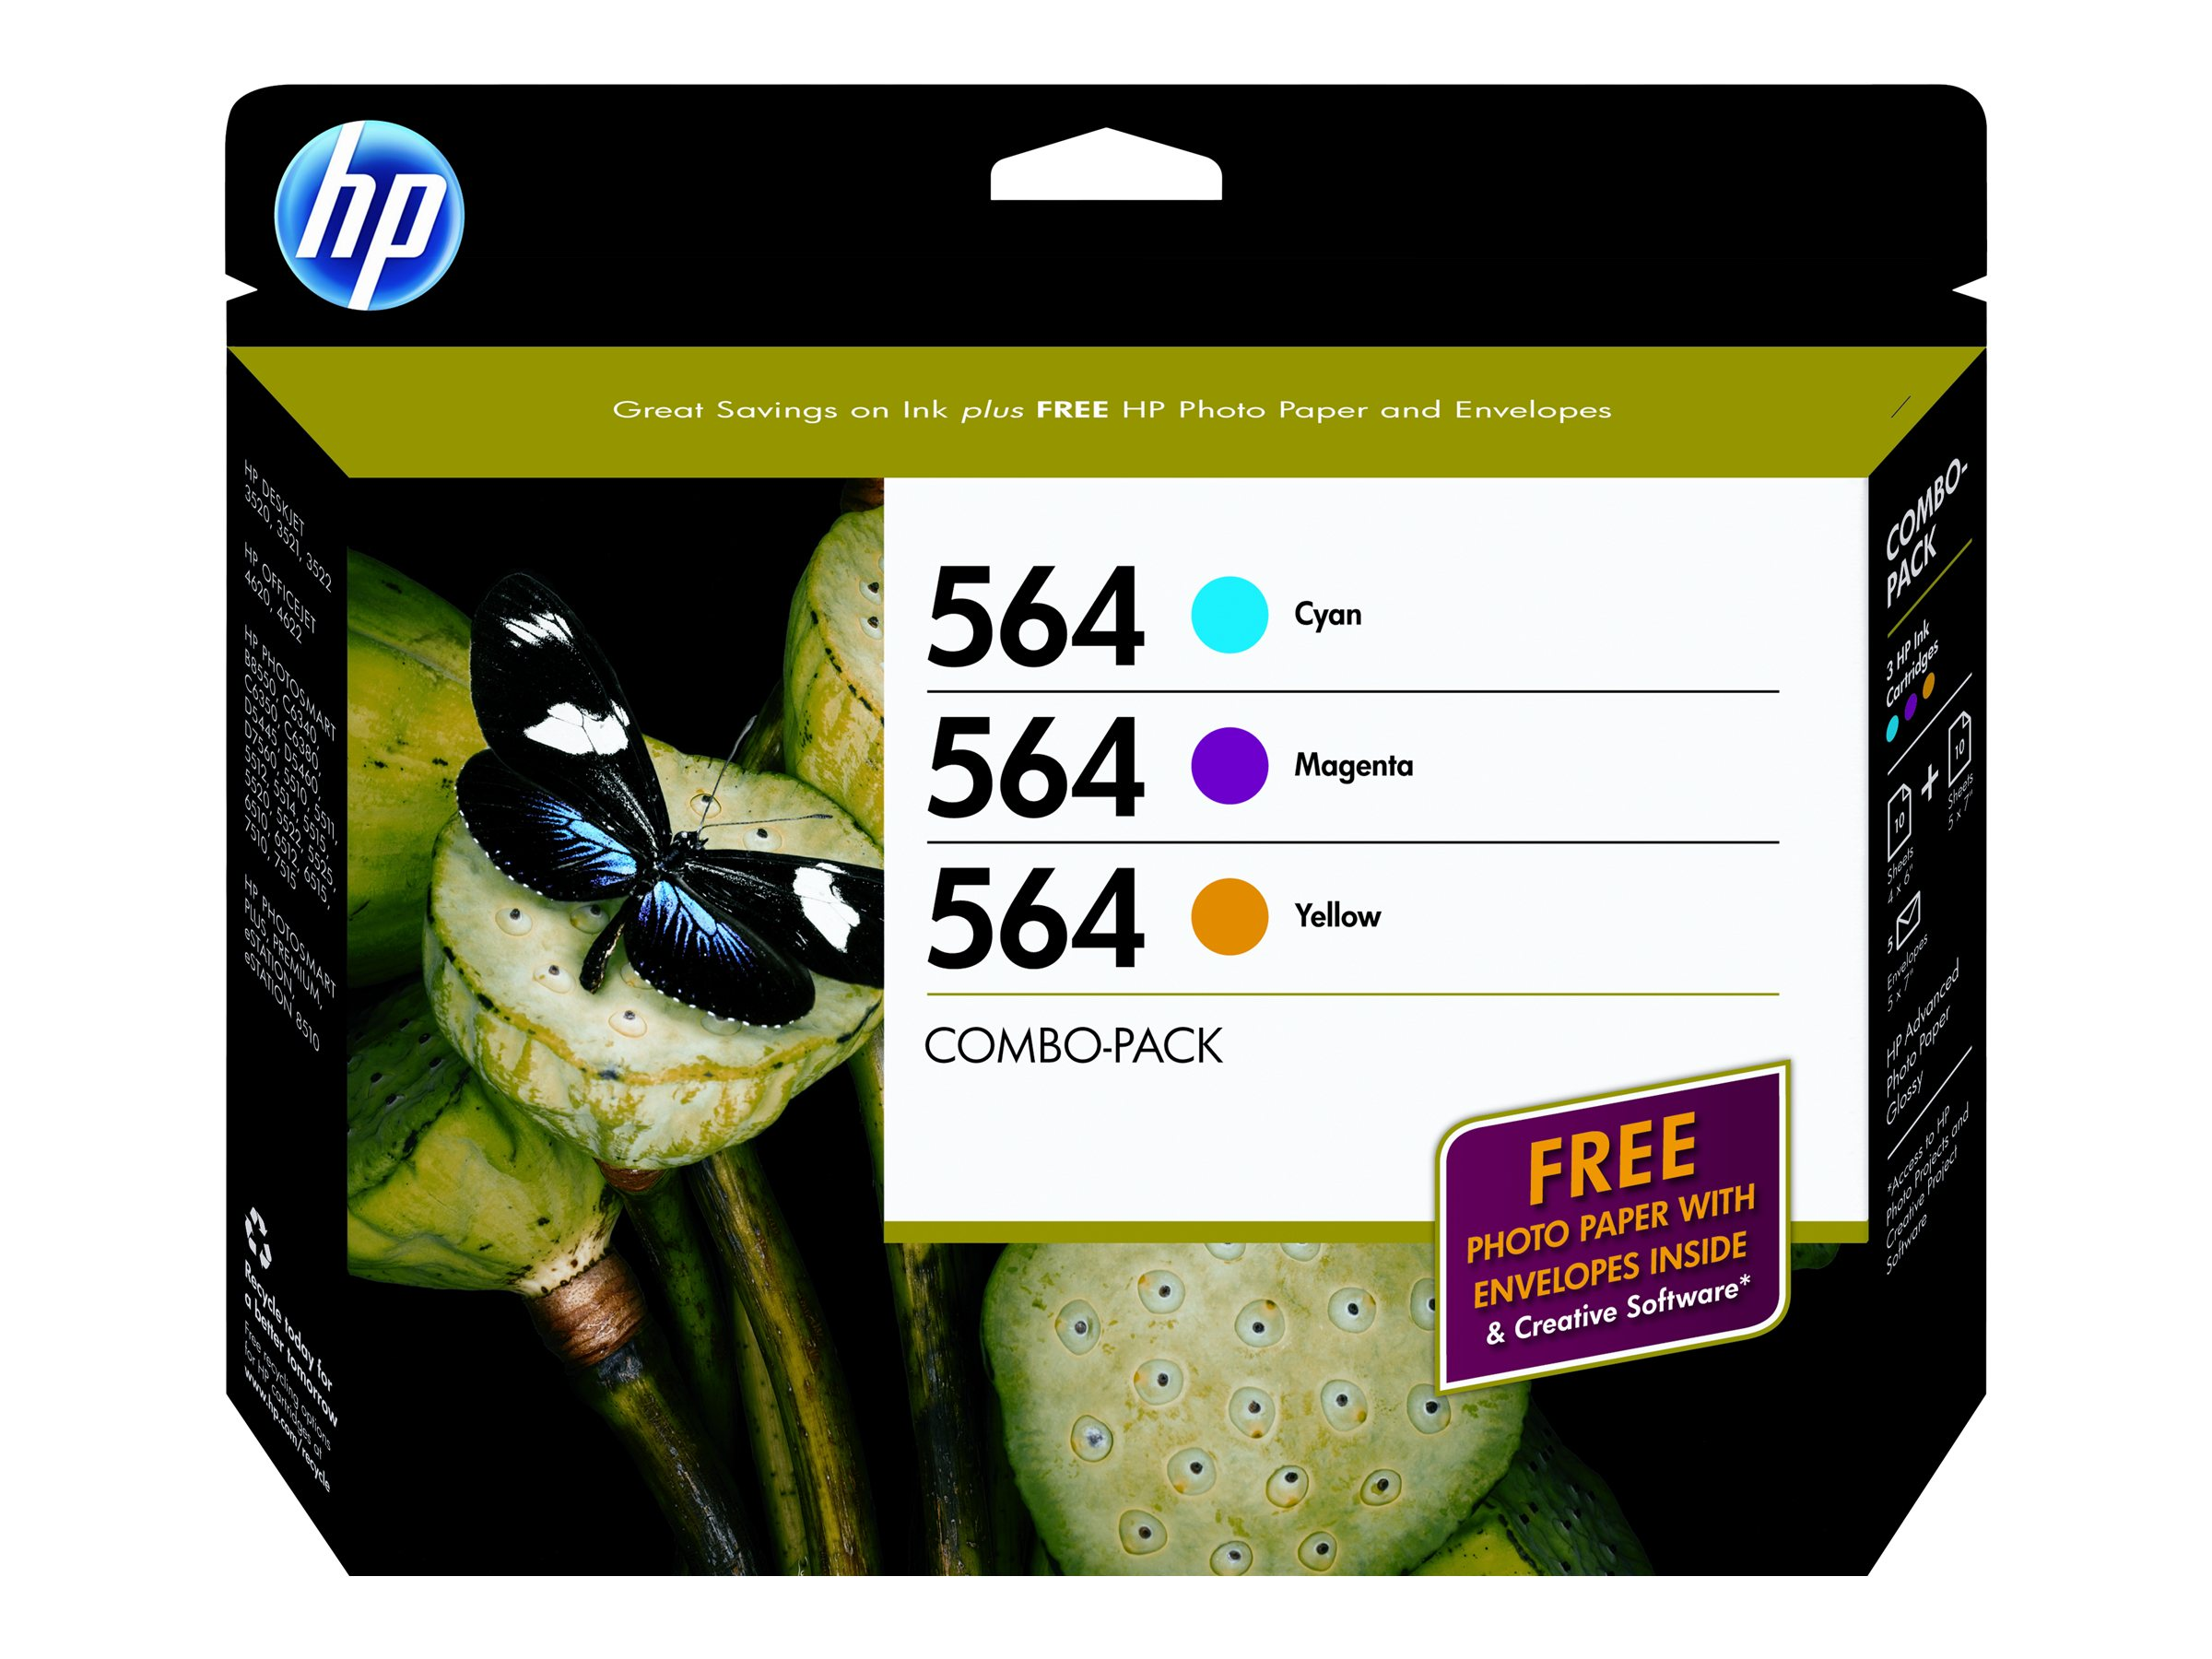 HP 564 (B3B33FN) 3-pack Cyan Magenta Yellow Original Ink Cartridges w  Photo Paper, B3B33FN#140, 14610862, Ink Cartridges & Ink Refill Kits